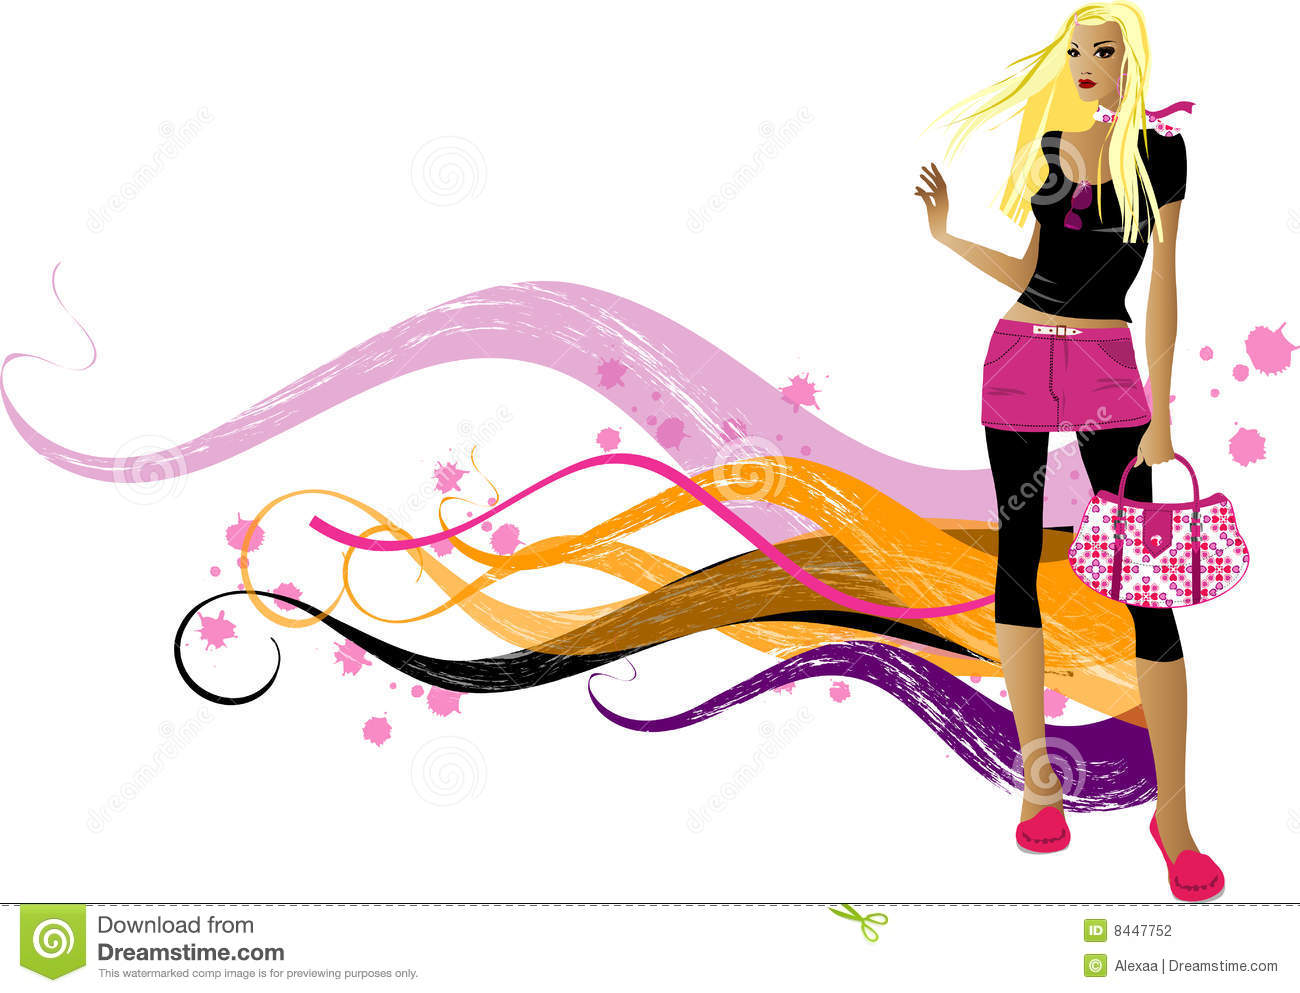 Elements of fashion and apparel design 21